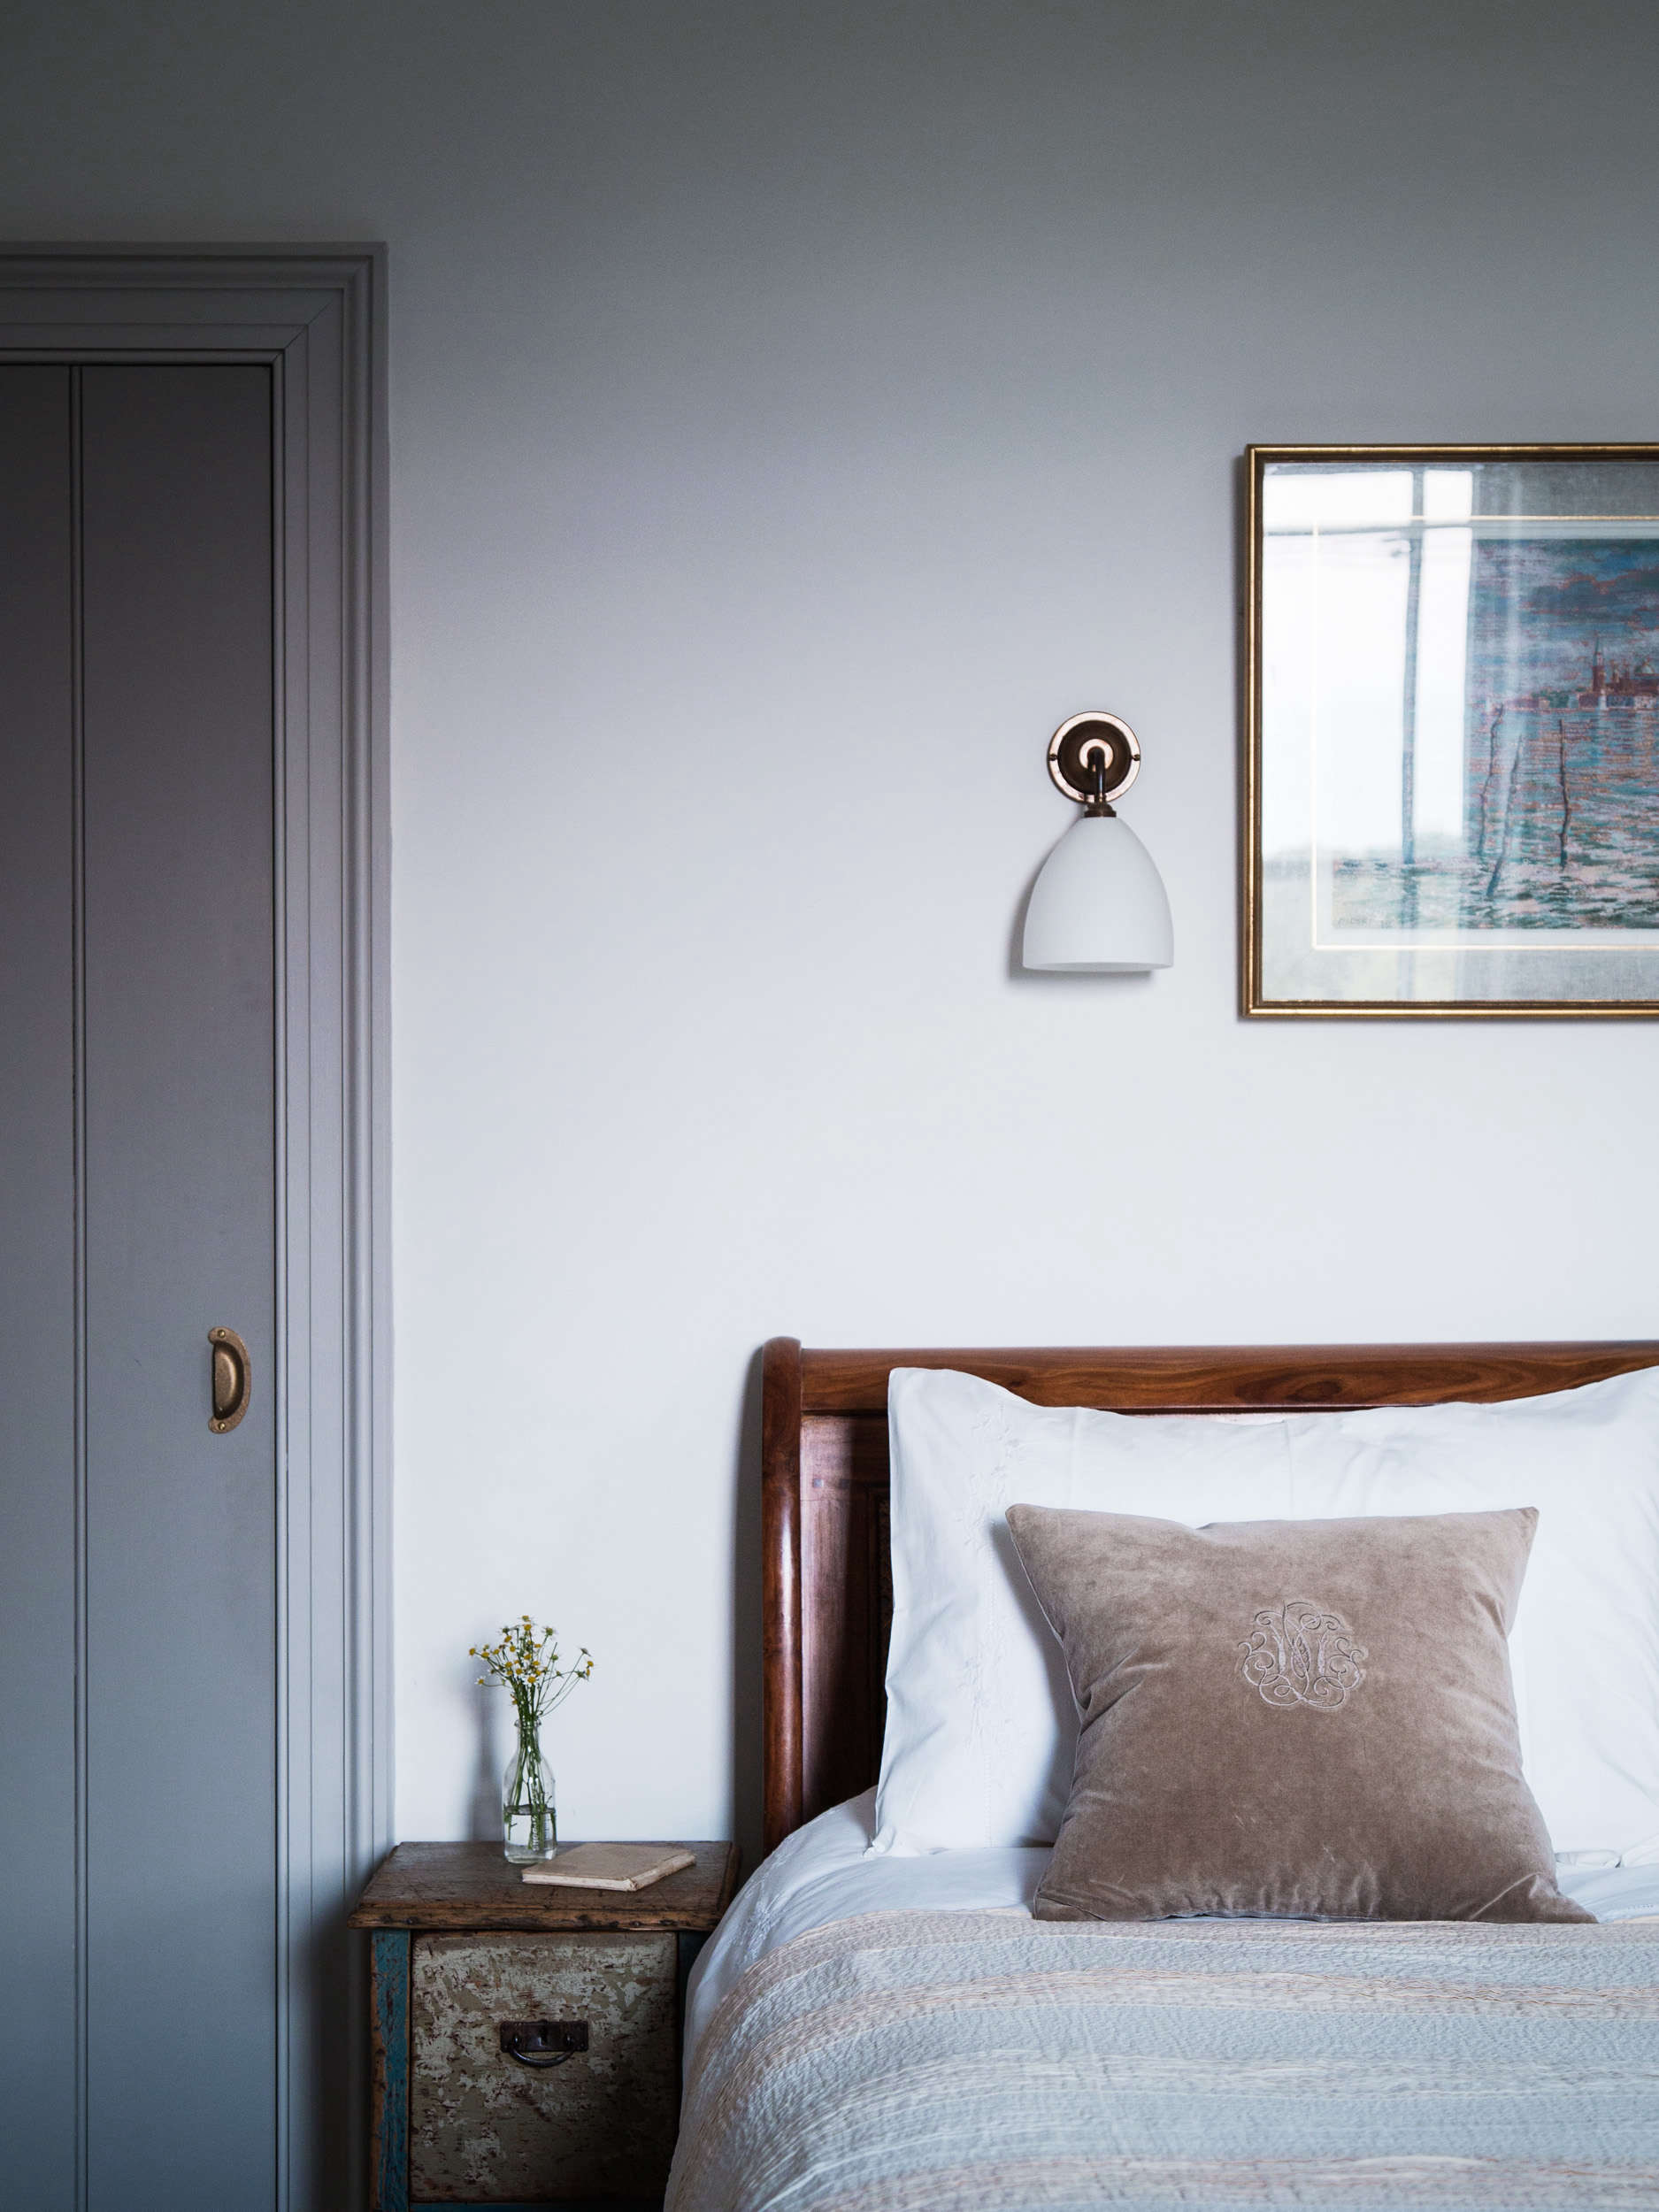 Bedroom in Blue Dorset House by Mark Lewis, Photo by Rory Gardiner